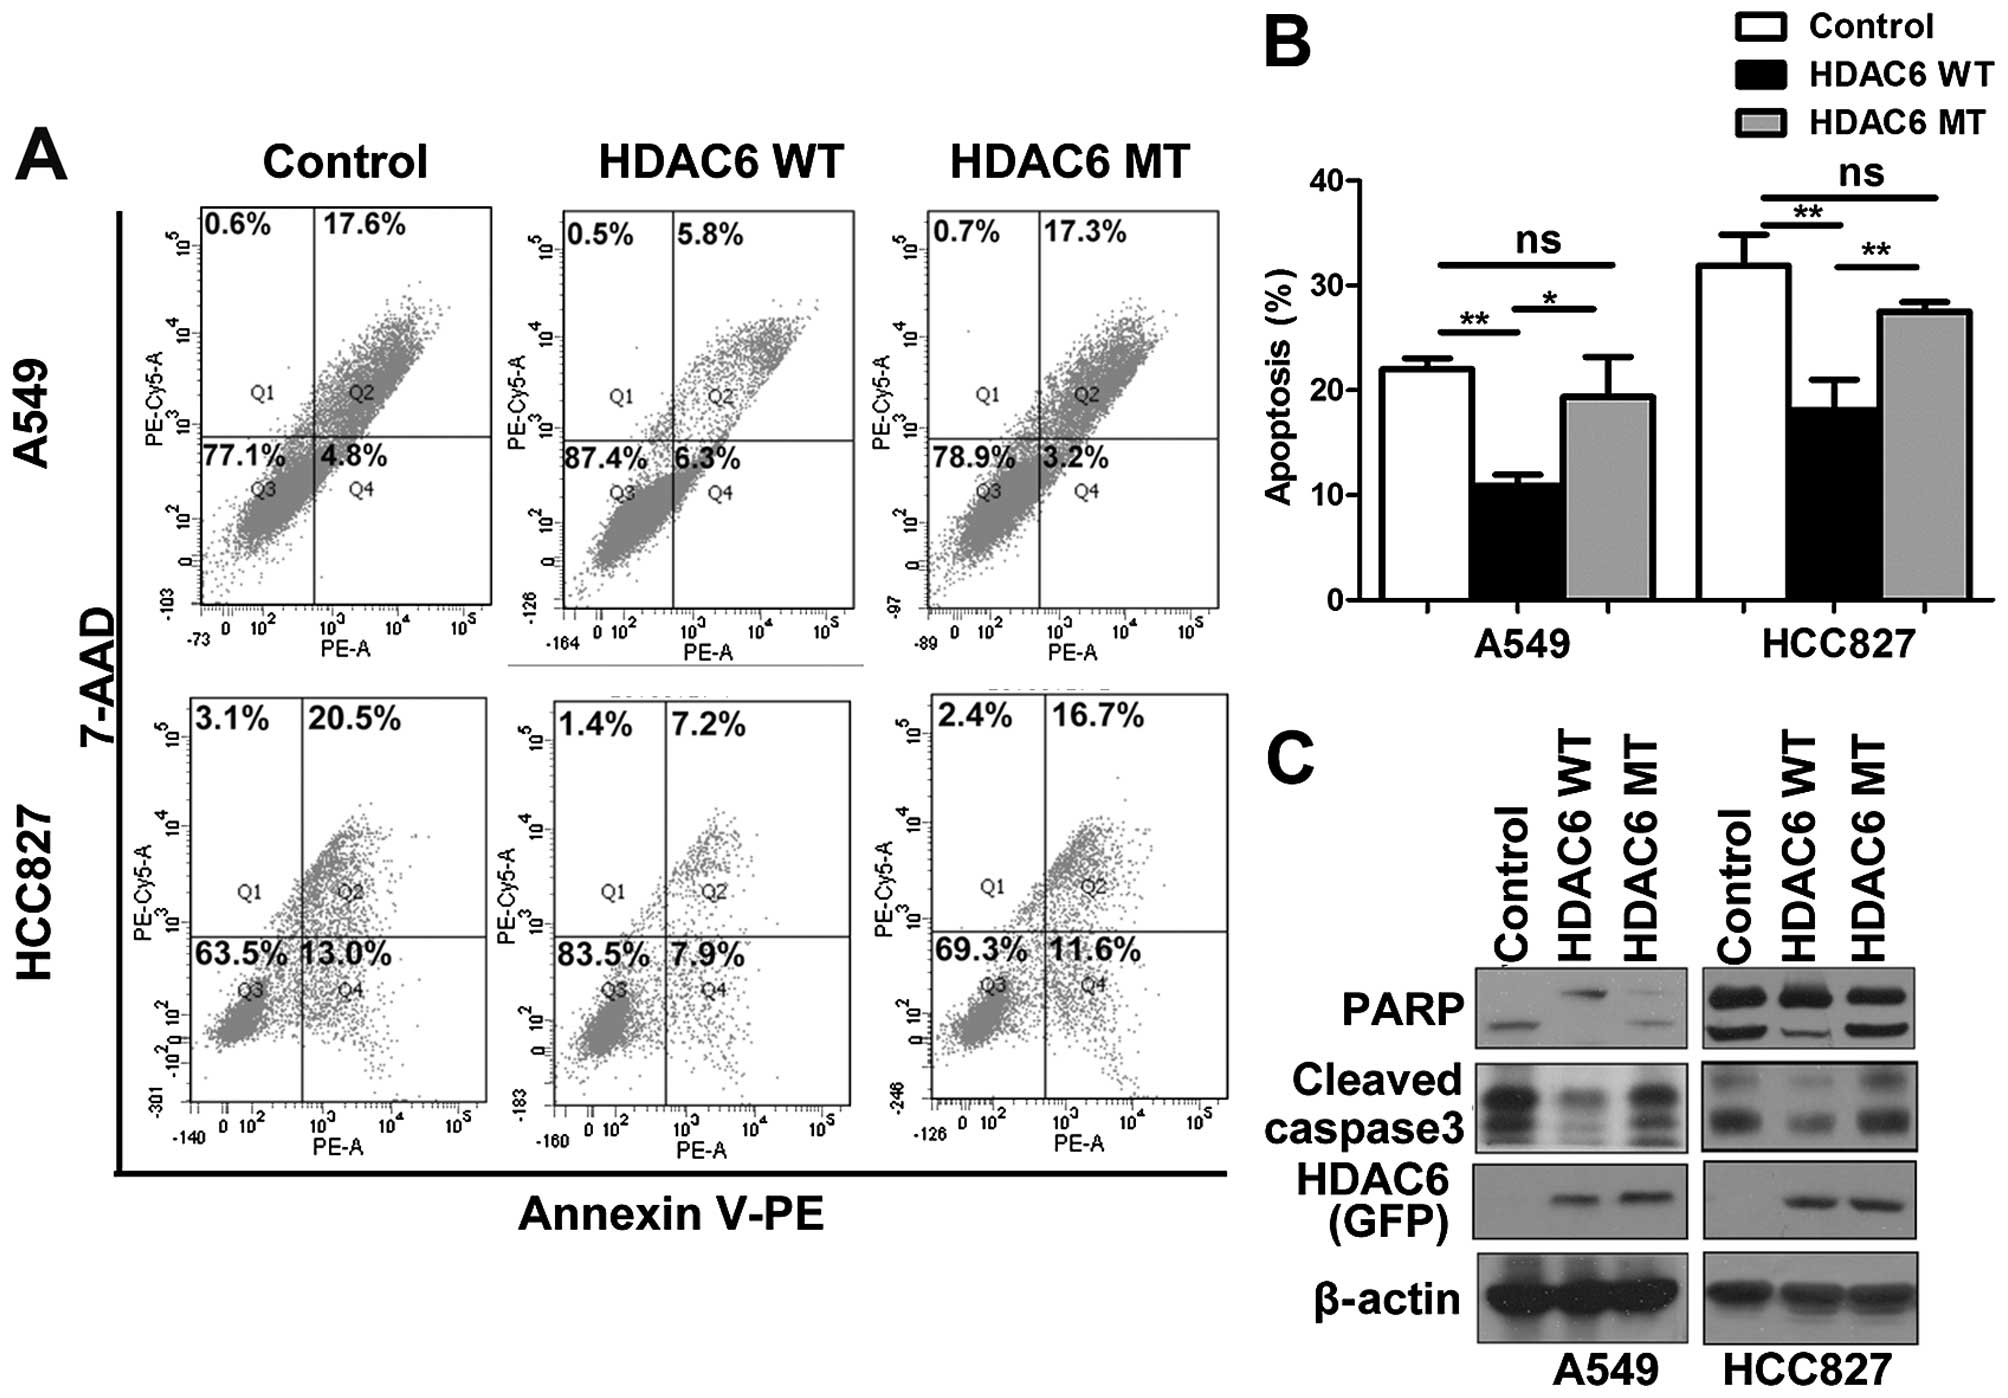 hdac6 promotes cell proliferation and confers resistance